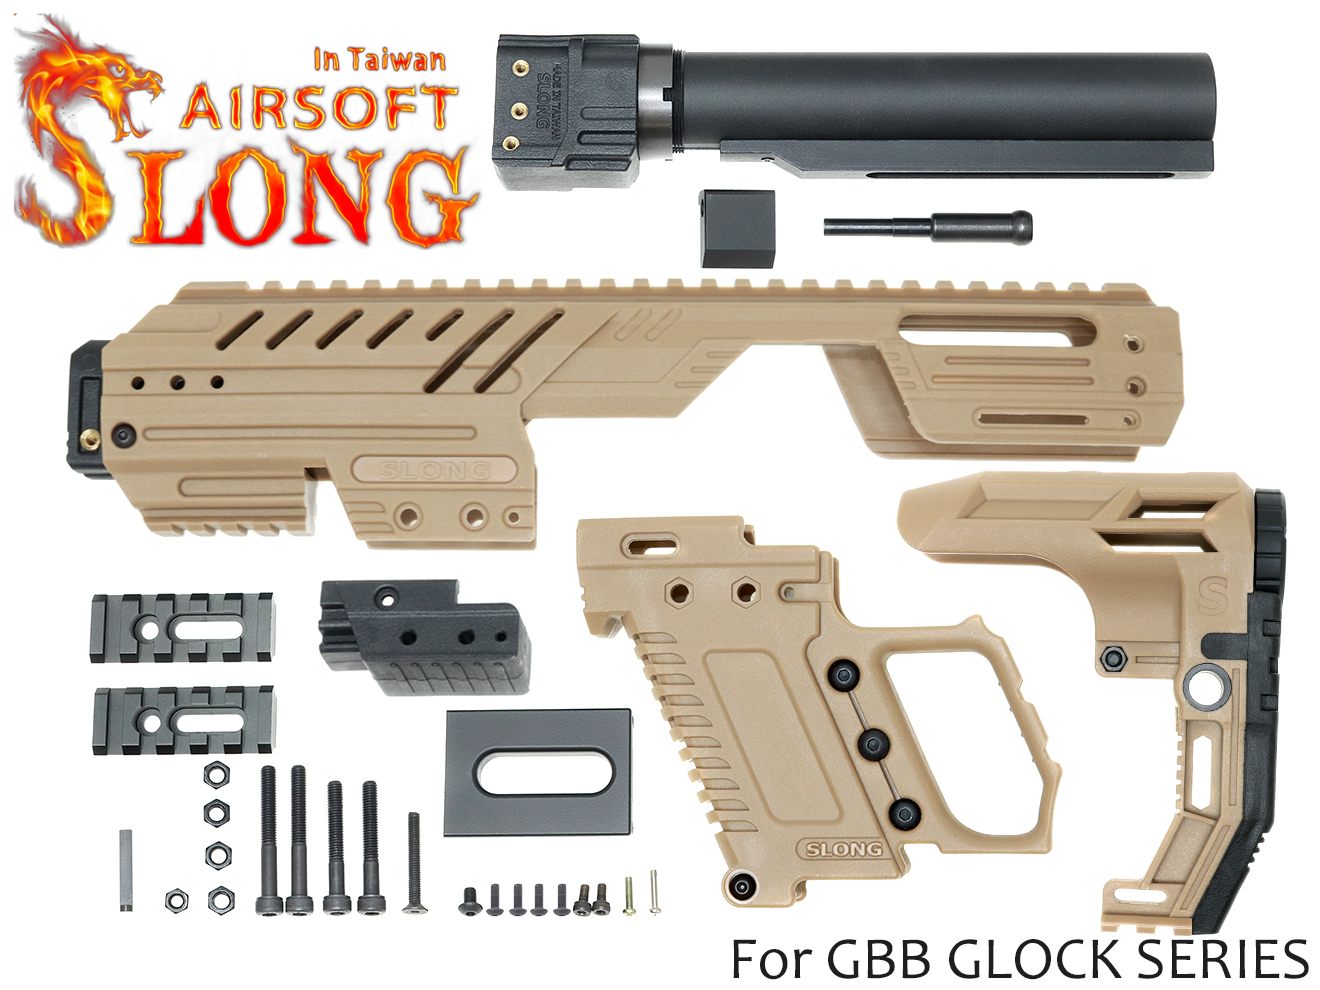 SLONG AIRSOFT MPG-KRISS XI コンバージョンキット for G17/G18C/G22/G34◆TAN グロックを瞬時にPDW化 VECTOR風外観 軽量 取り回し◎